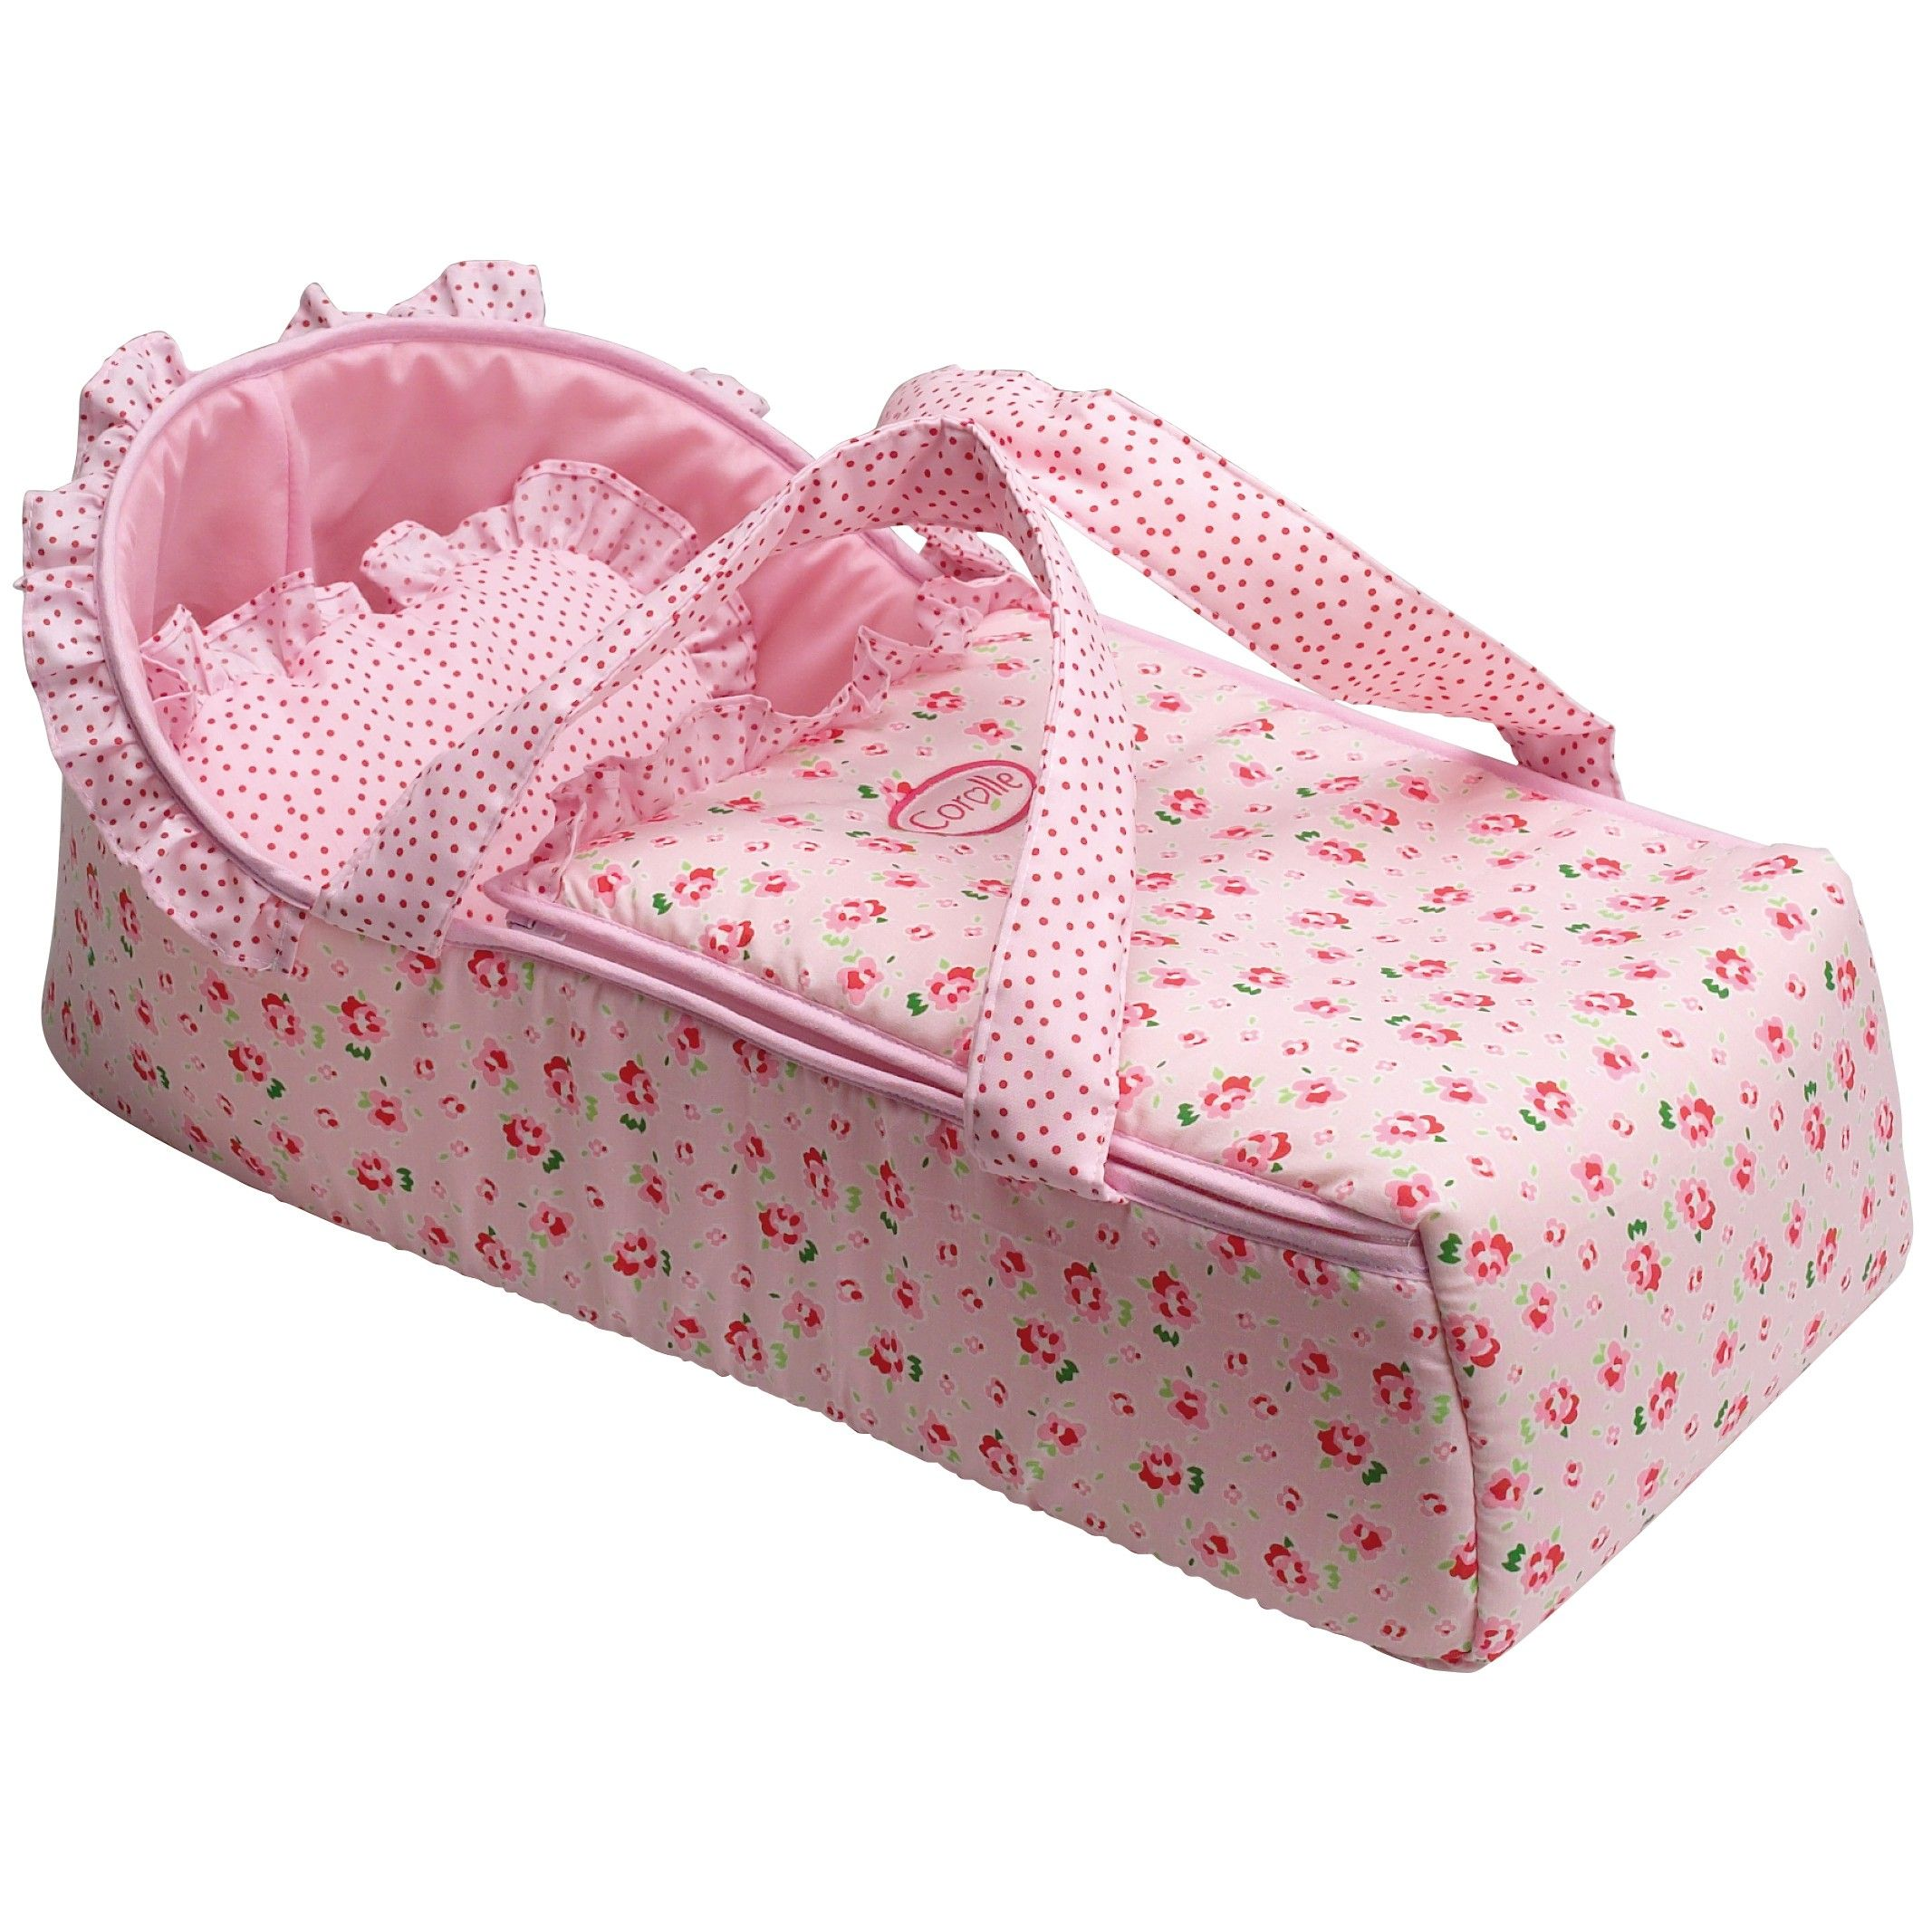 Pink Baby Doll Carry Bed Corolle W1500 | * N&L Gift Ideas ...